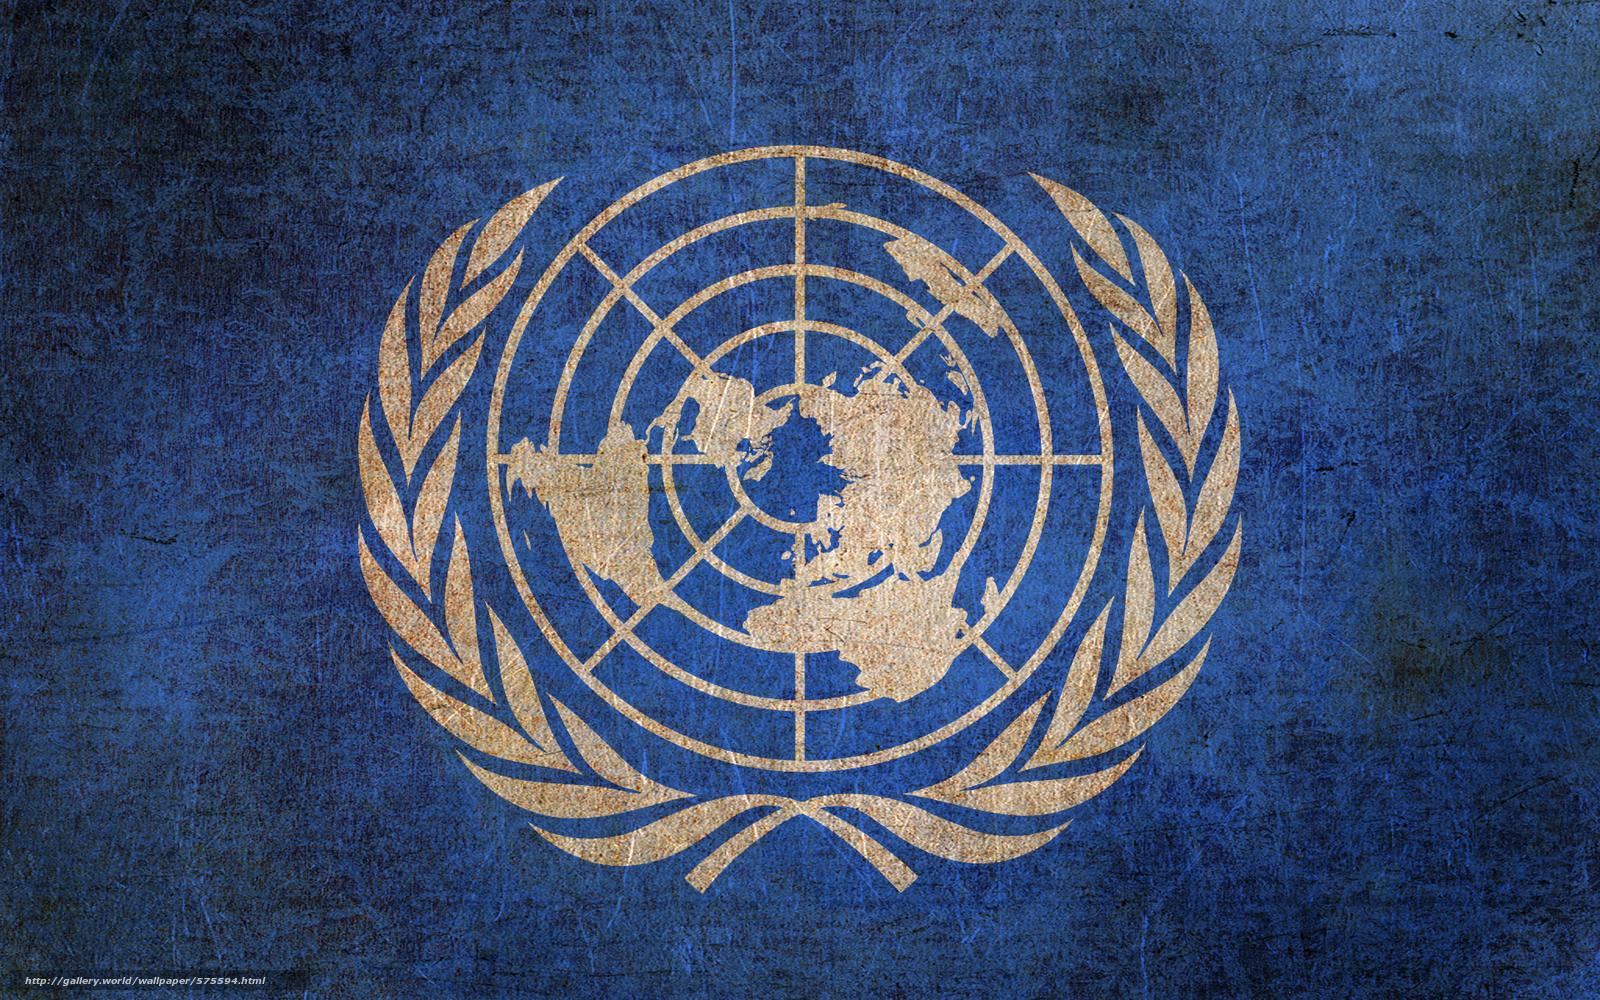 an analysis of the united nations international tribunal to adjudicate war crimes Foreword by david cameron, prime minister of the united kingdom the sources of international law an analysis of the united nations international tribunal to adjudicate war crimes article 38 of the statute of the international court of justice defines the sources of international law before: .